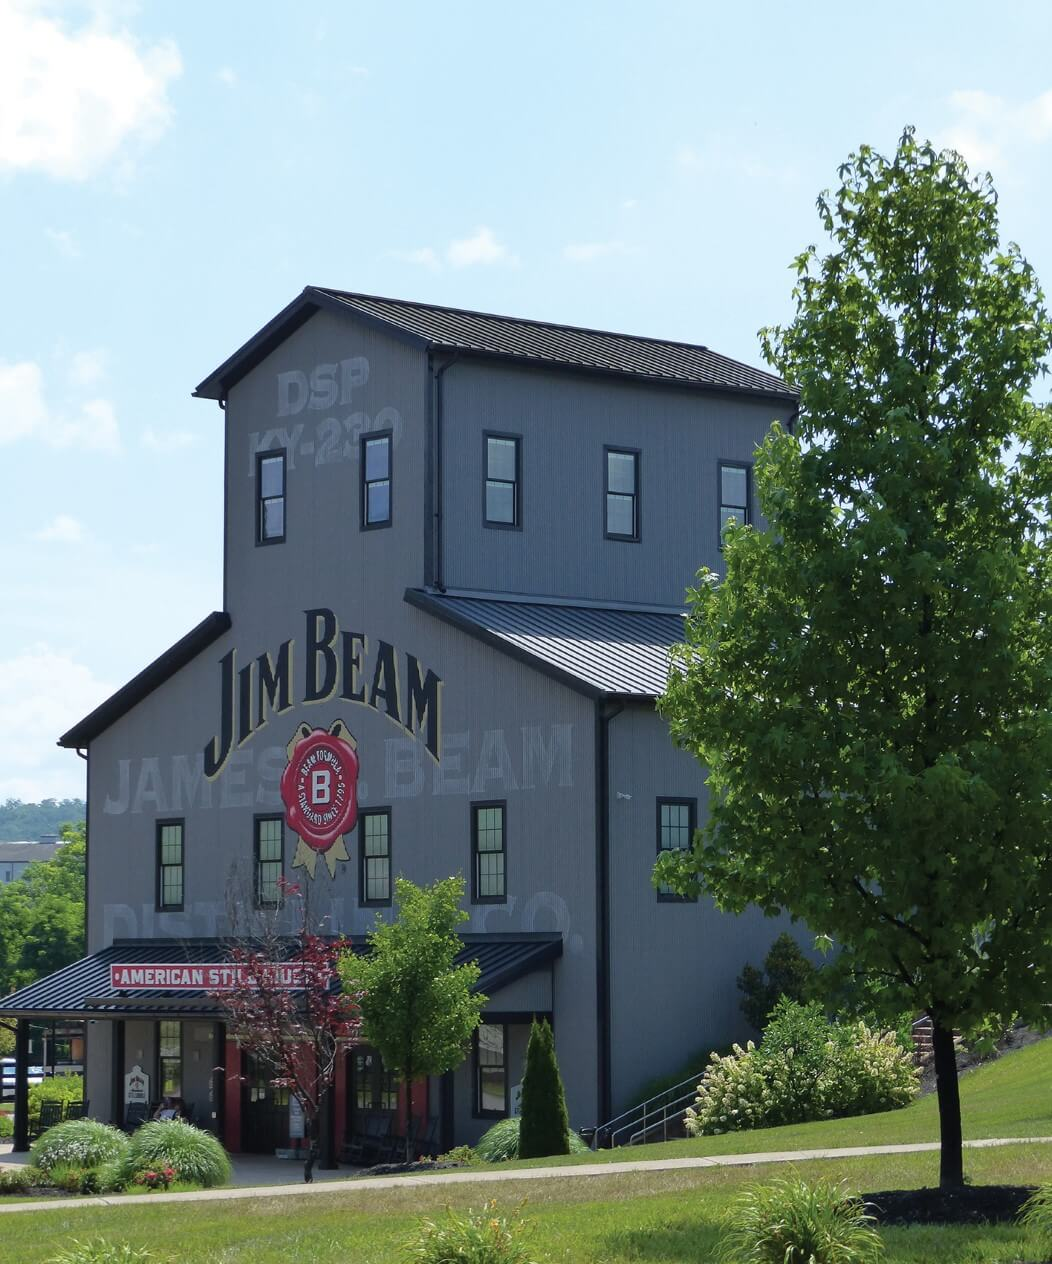 The Jim Beam still house